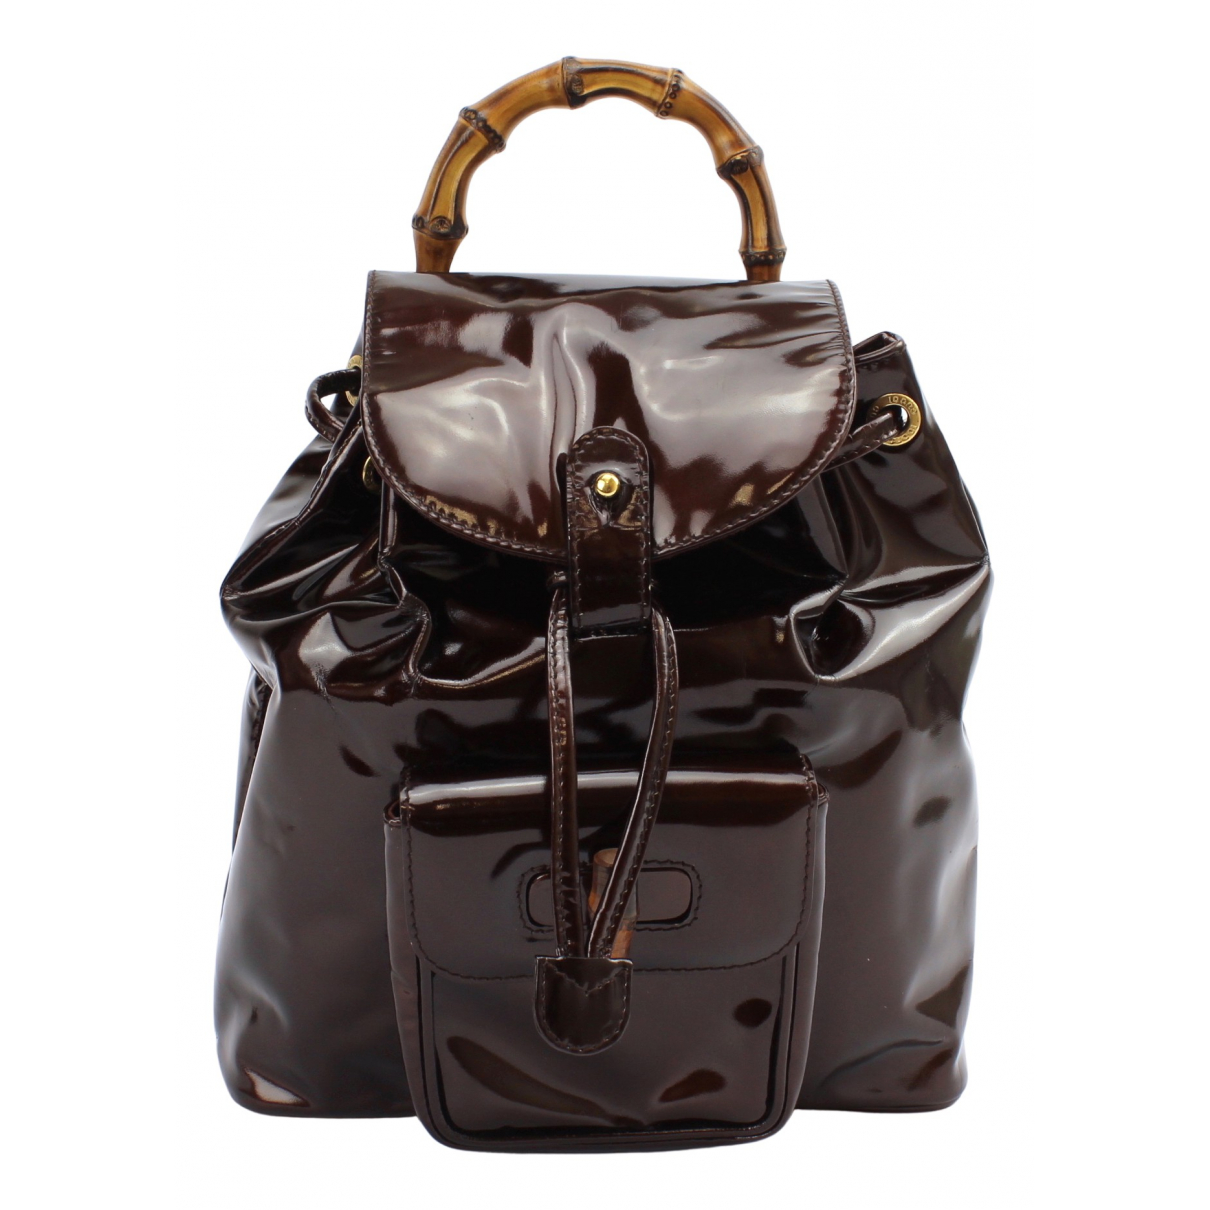 Gucci Bamboo Purple Patent leather backpack for Women N